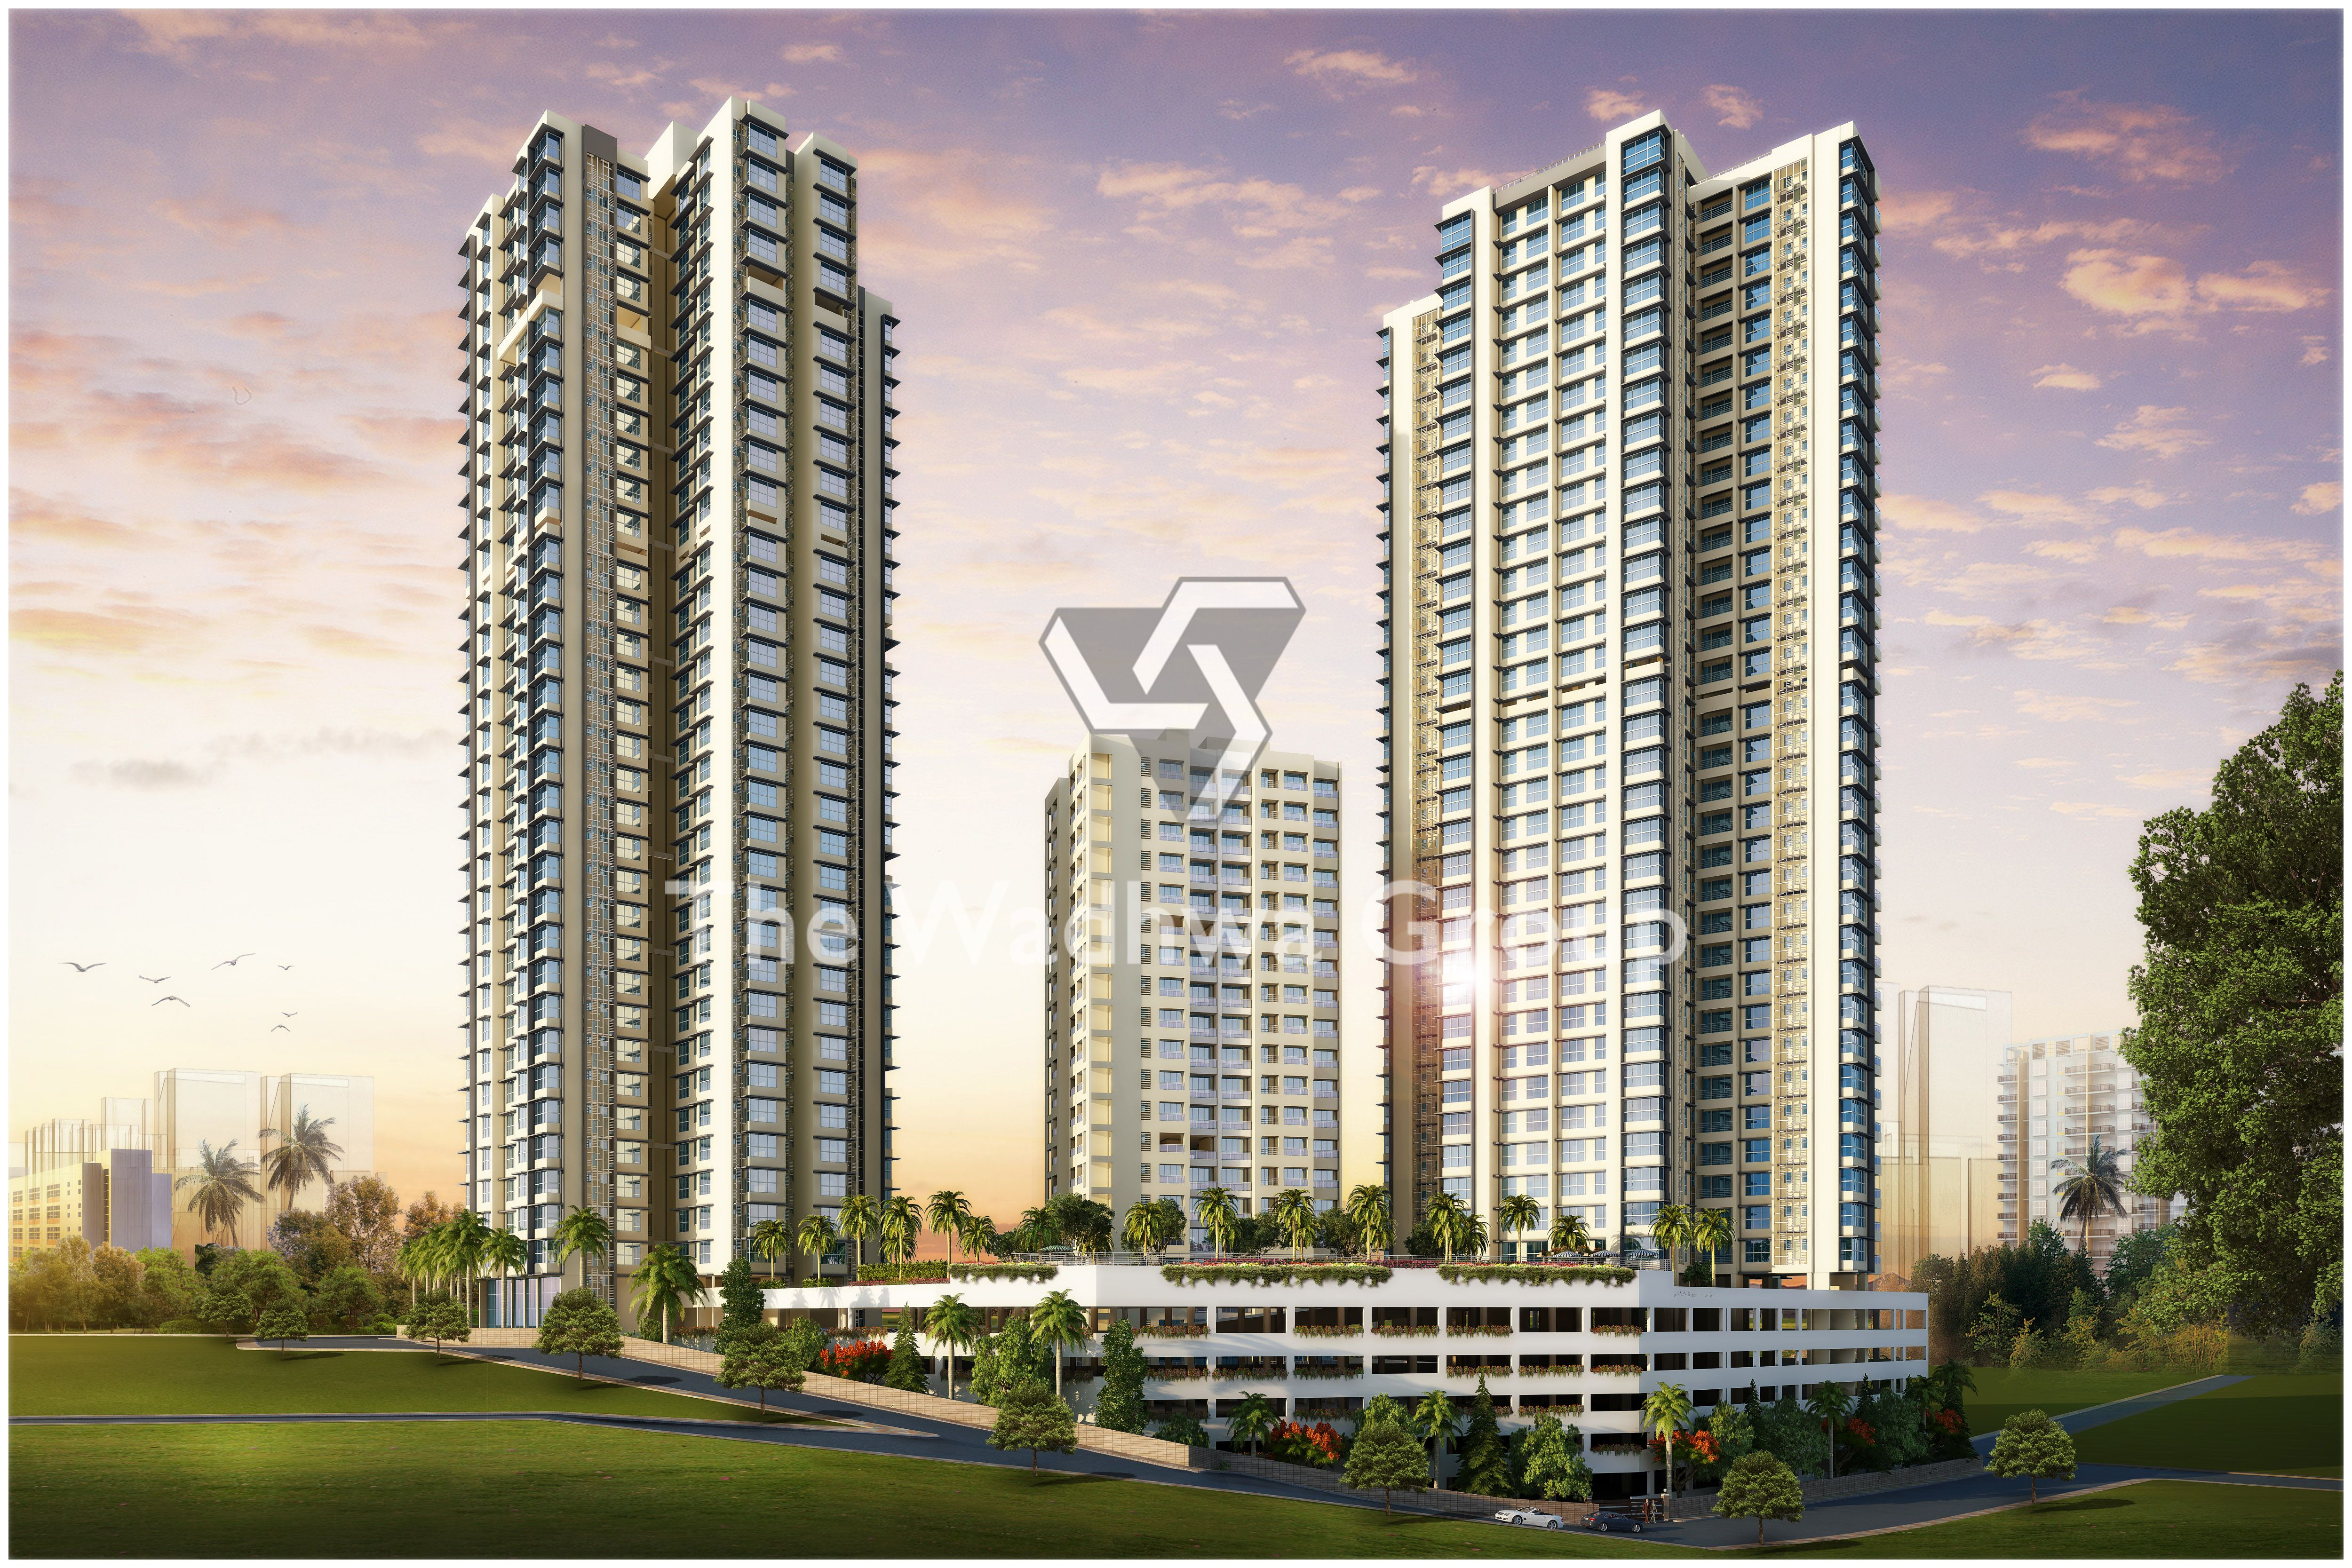 Anmol Fortune Residential Property In Goregaon By The Wadhwa Group Property Residential Real Estate